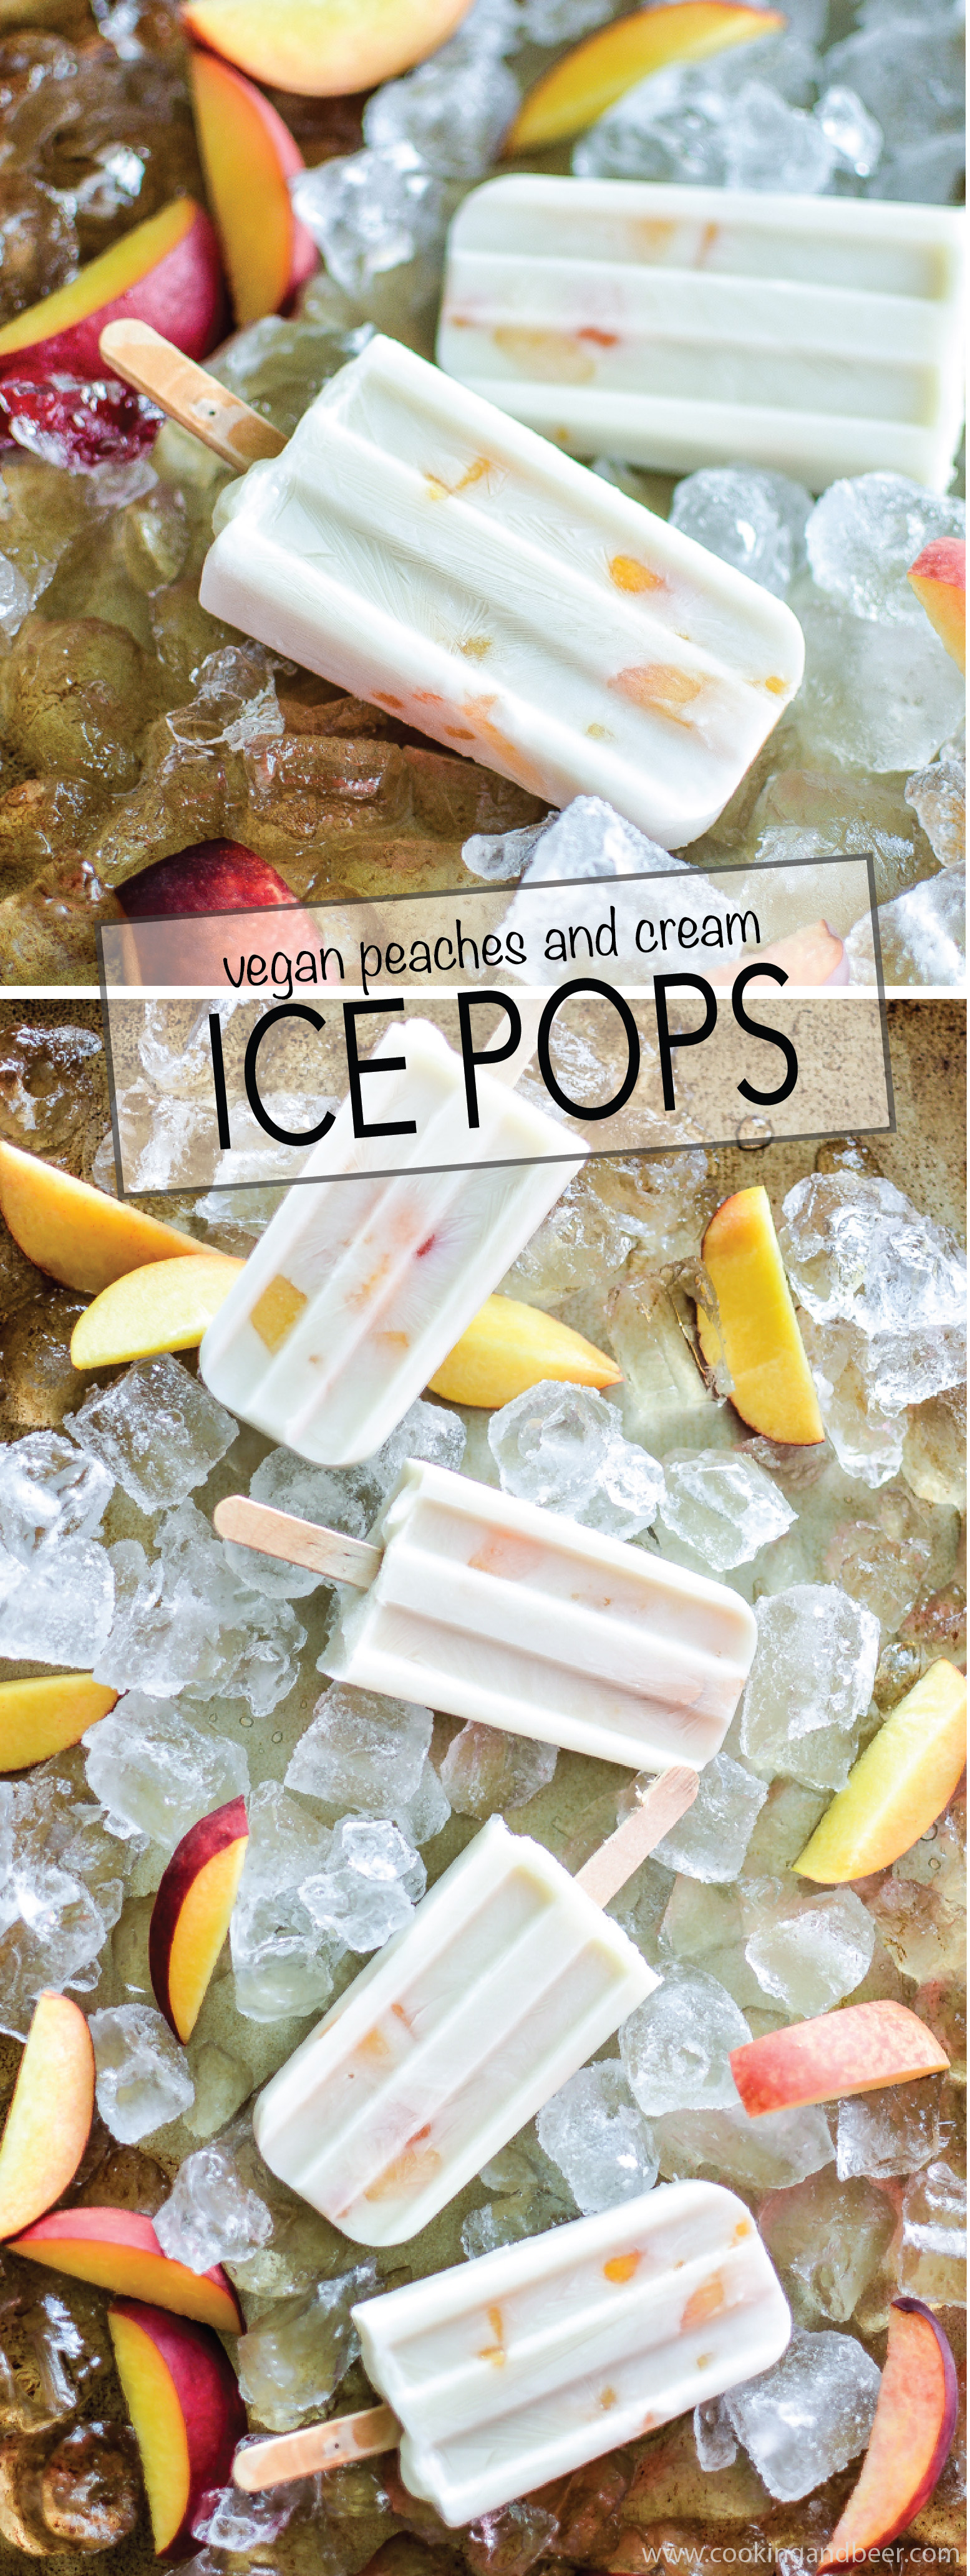 These vegan peaches and cream ice pops are the perfect recipe to help you cool down this summer. They are light, healthy and utterly delicious! | www.cookingandbeer.com